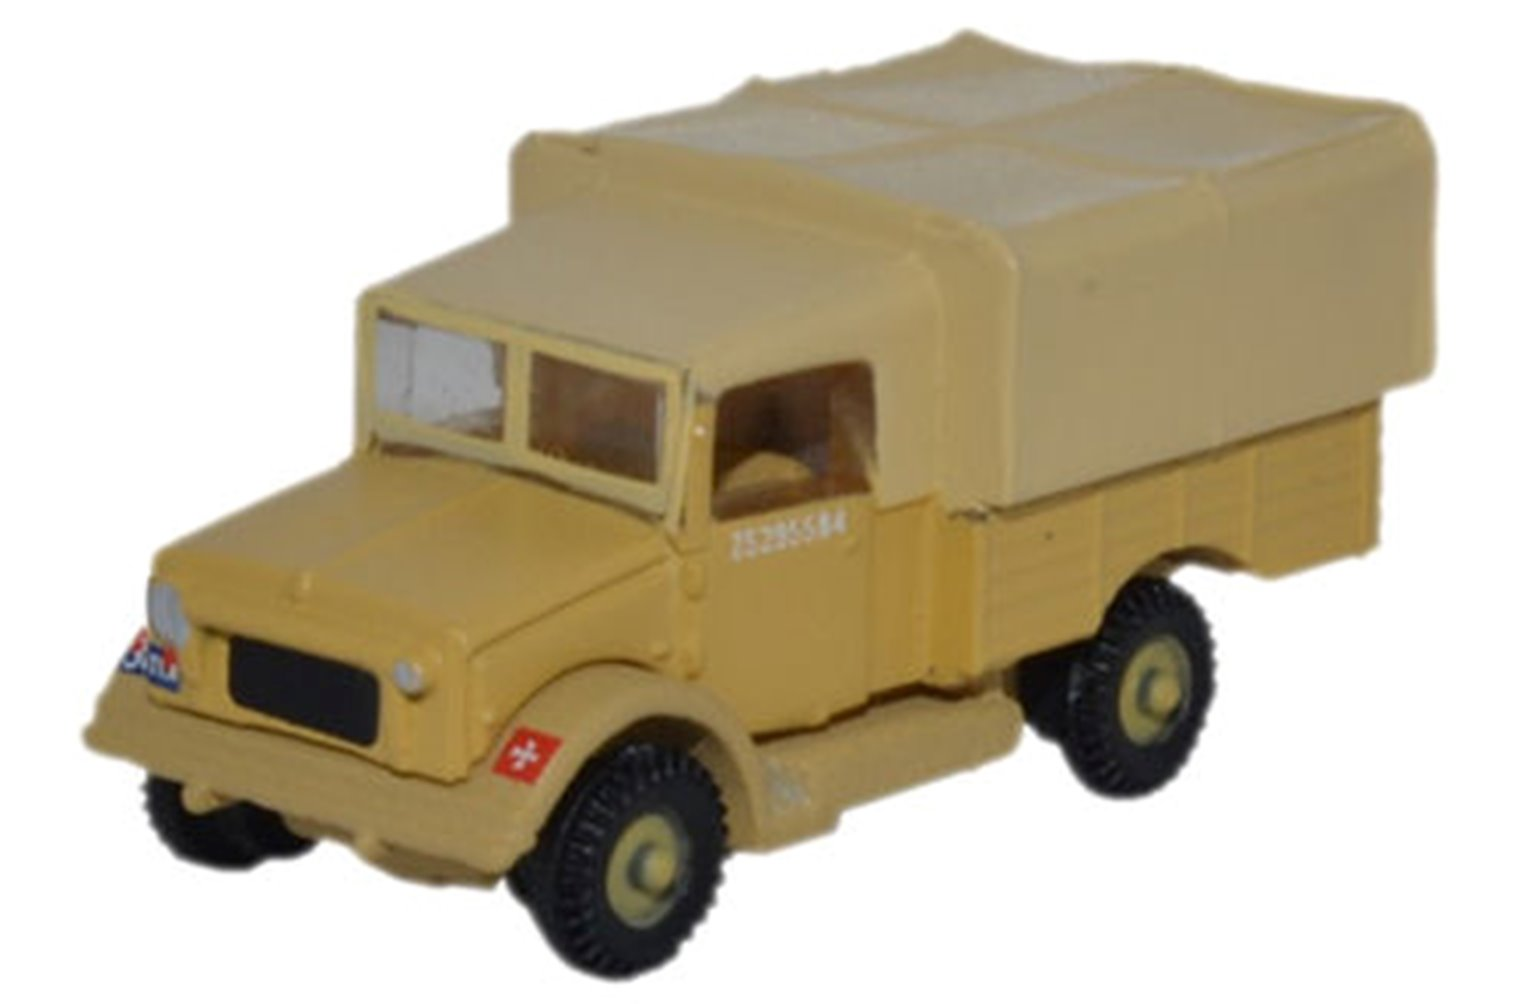 Oxford Diecast NMWD002 Bedford MWD Royal Artillery